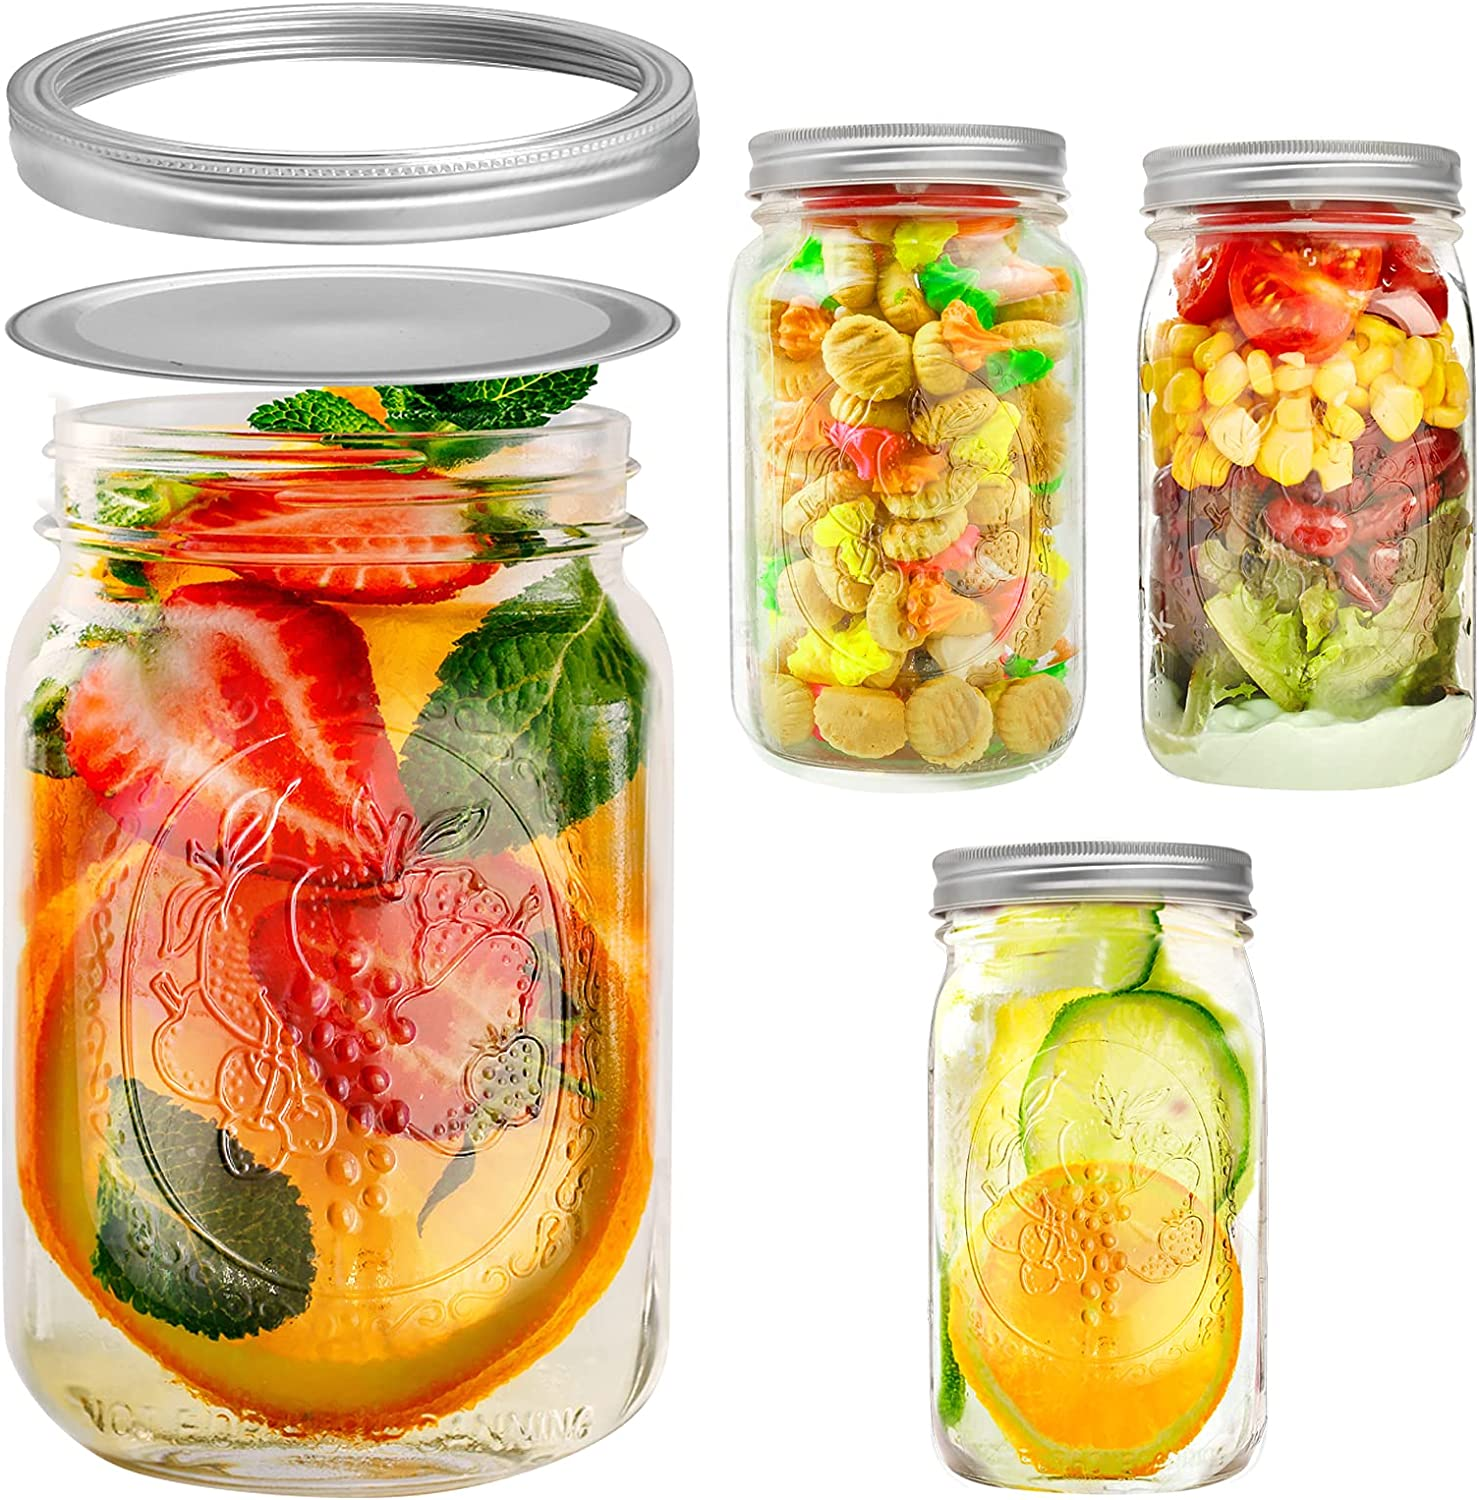 Ball Mason Jars 32 oz Wide Mouth with Lids and Bands, 4 Pack Glass Canning Jars Mason Jars with Airtight Lids for Food Storage,Canning,Salads,Jam,Cookies,Honey and DIY Decoration